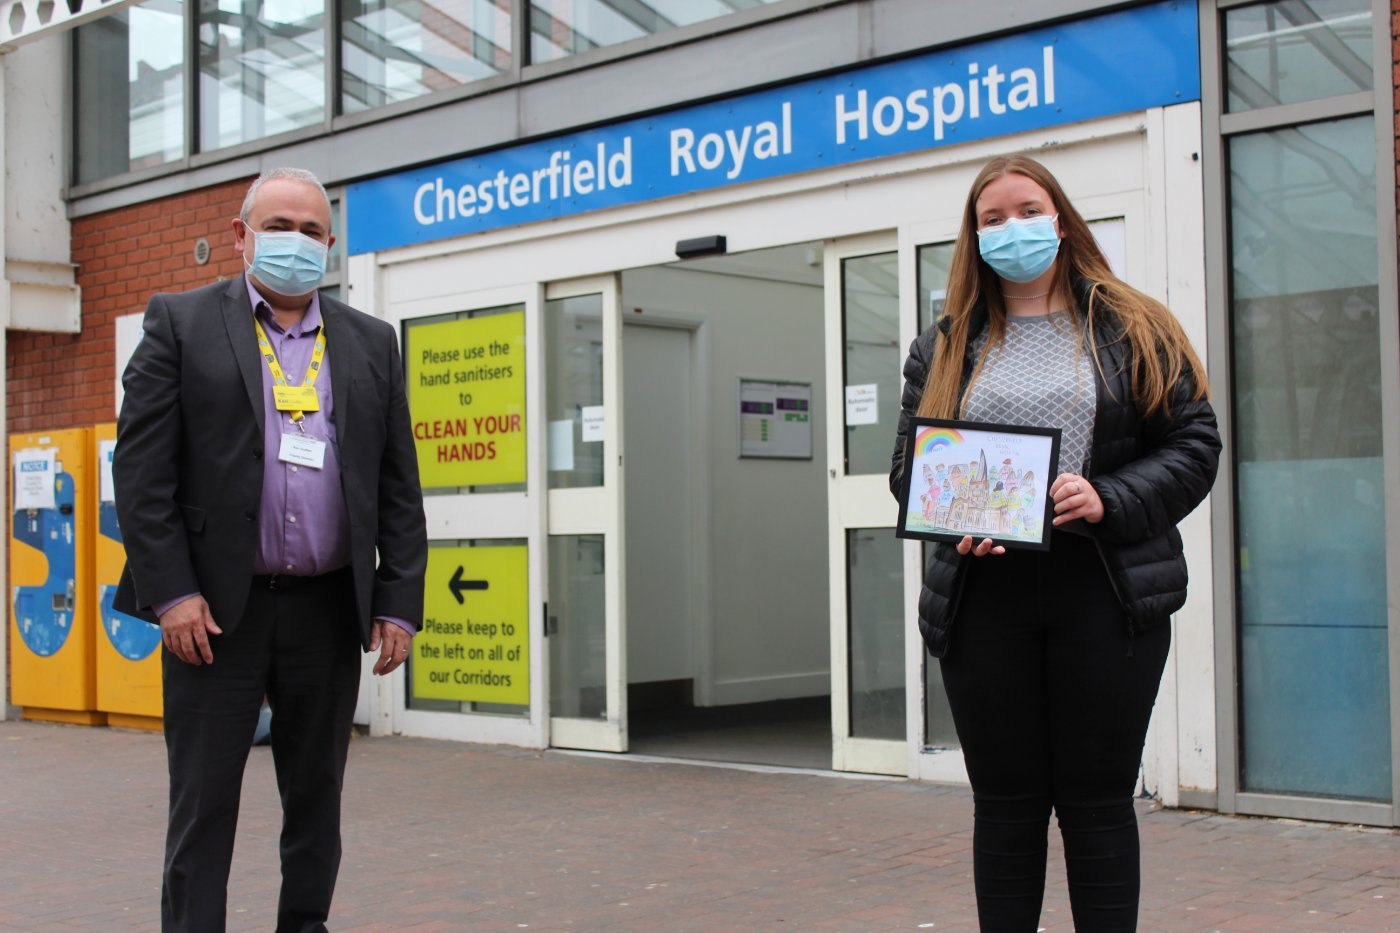 Teenage Artist Raises £2,150 to #ProtectYourNHS